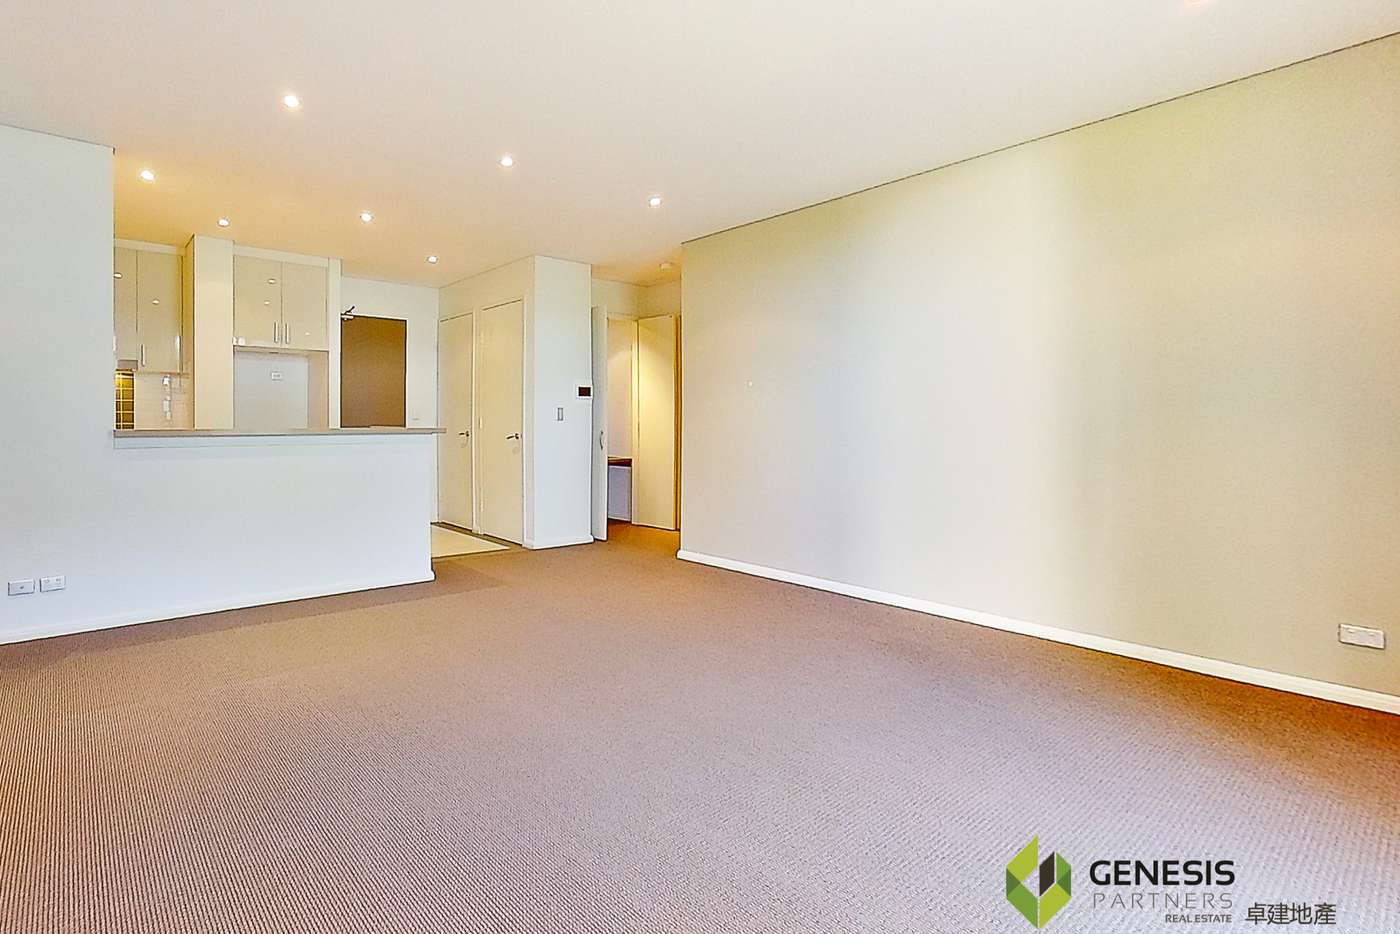 Main view of Homely apartment listing, 353/17-19 Memorial Avenue, St Ives NSW 2075